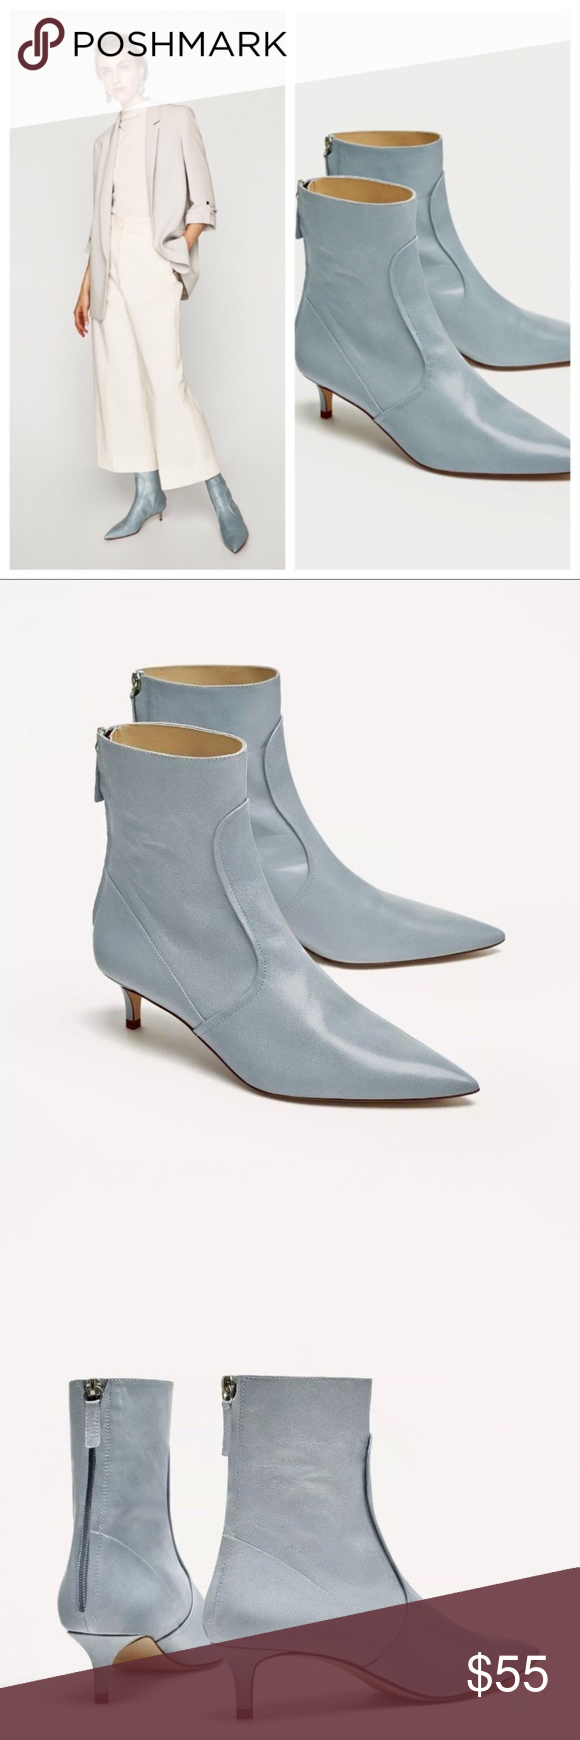 Leather Kitten Heel Baby Sky Blue Ankle Boots Blue Ankle Boots Boots Kitten Heel Ankle Boots